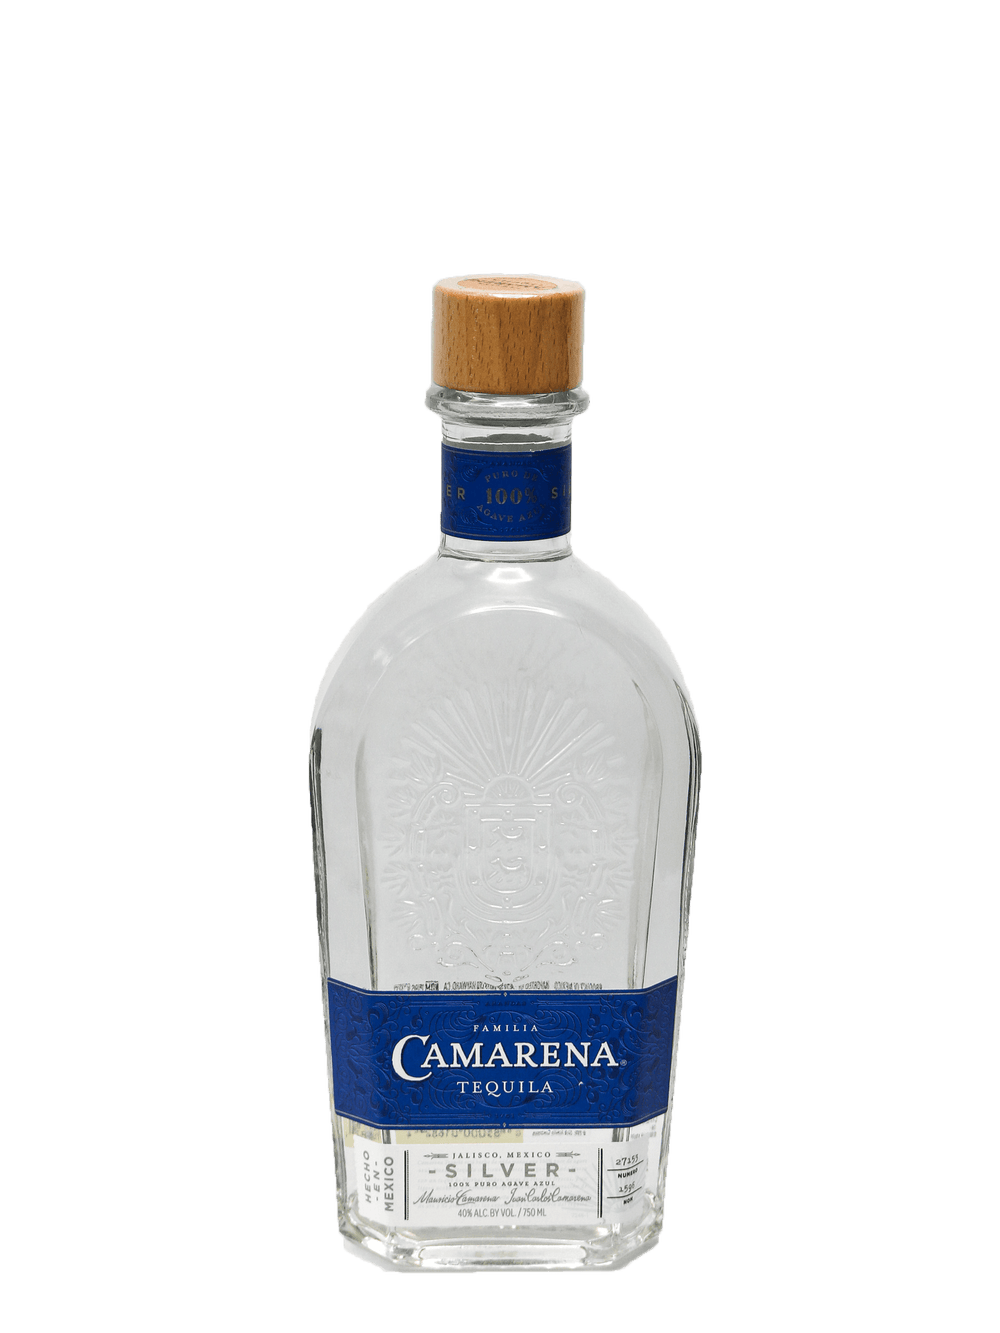 Camarena Silver Tequila 750ml